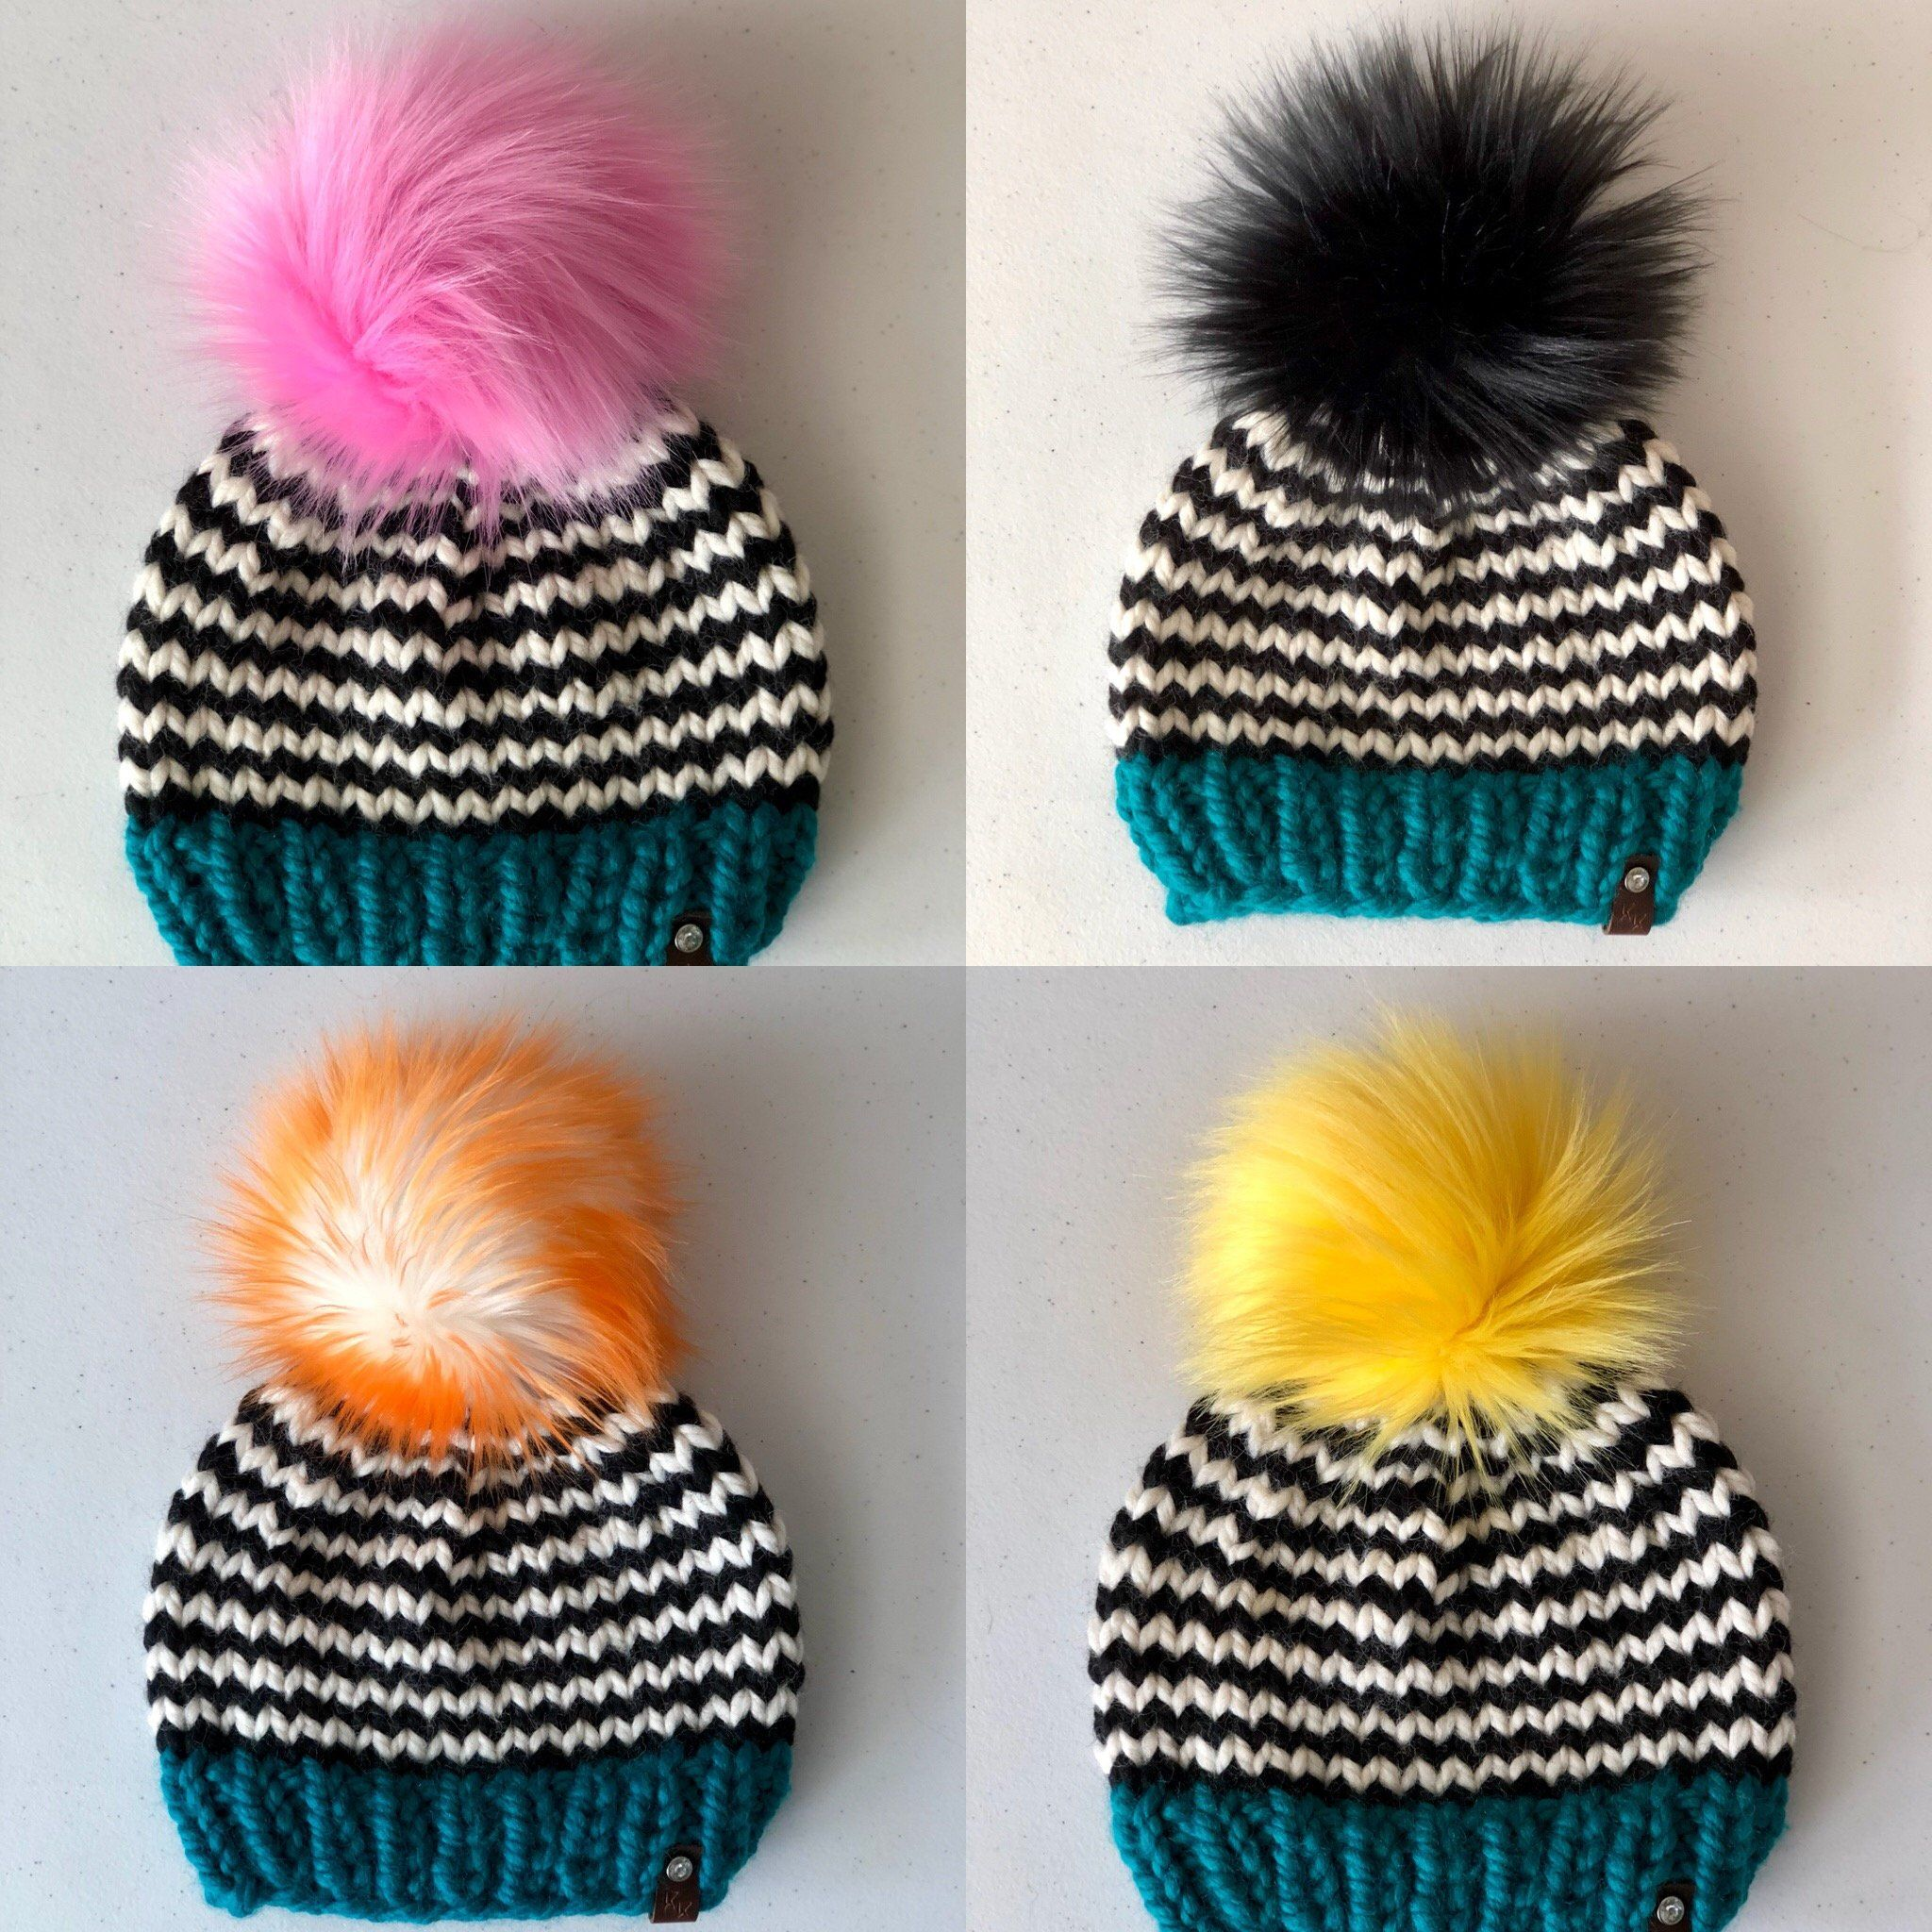 24a51d0e62c Toddler Peacock Teal Band Black Striped Hand Knit Beanie